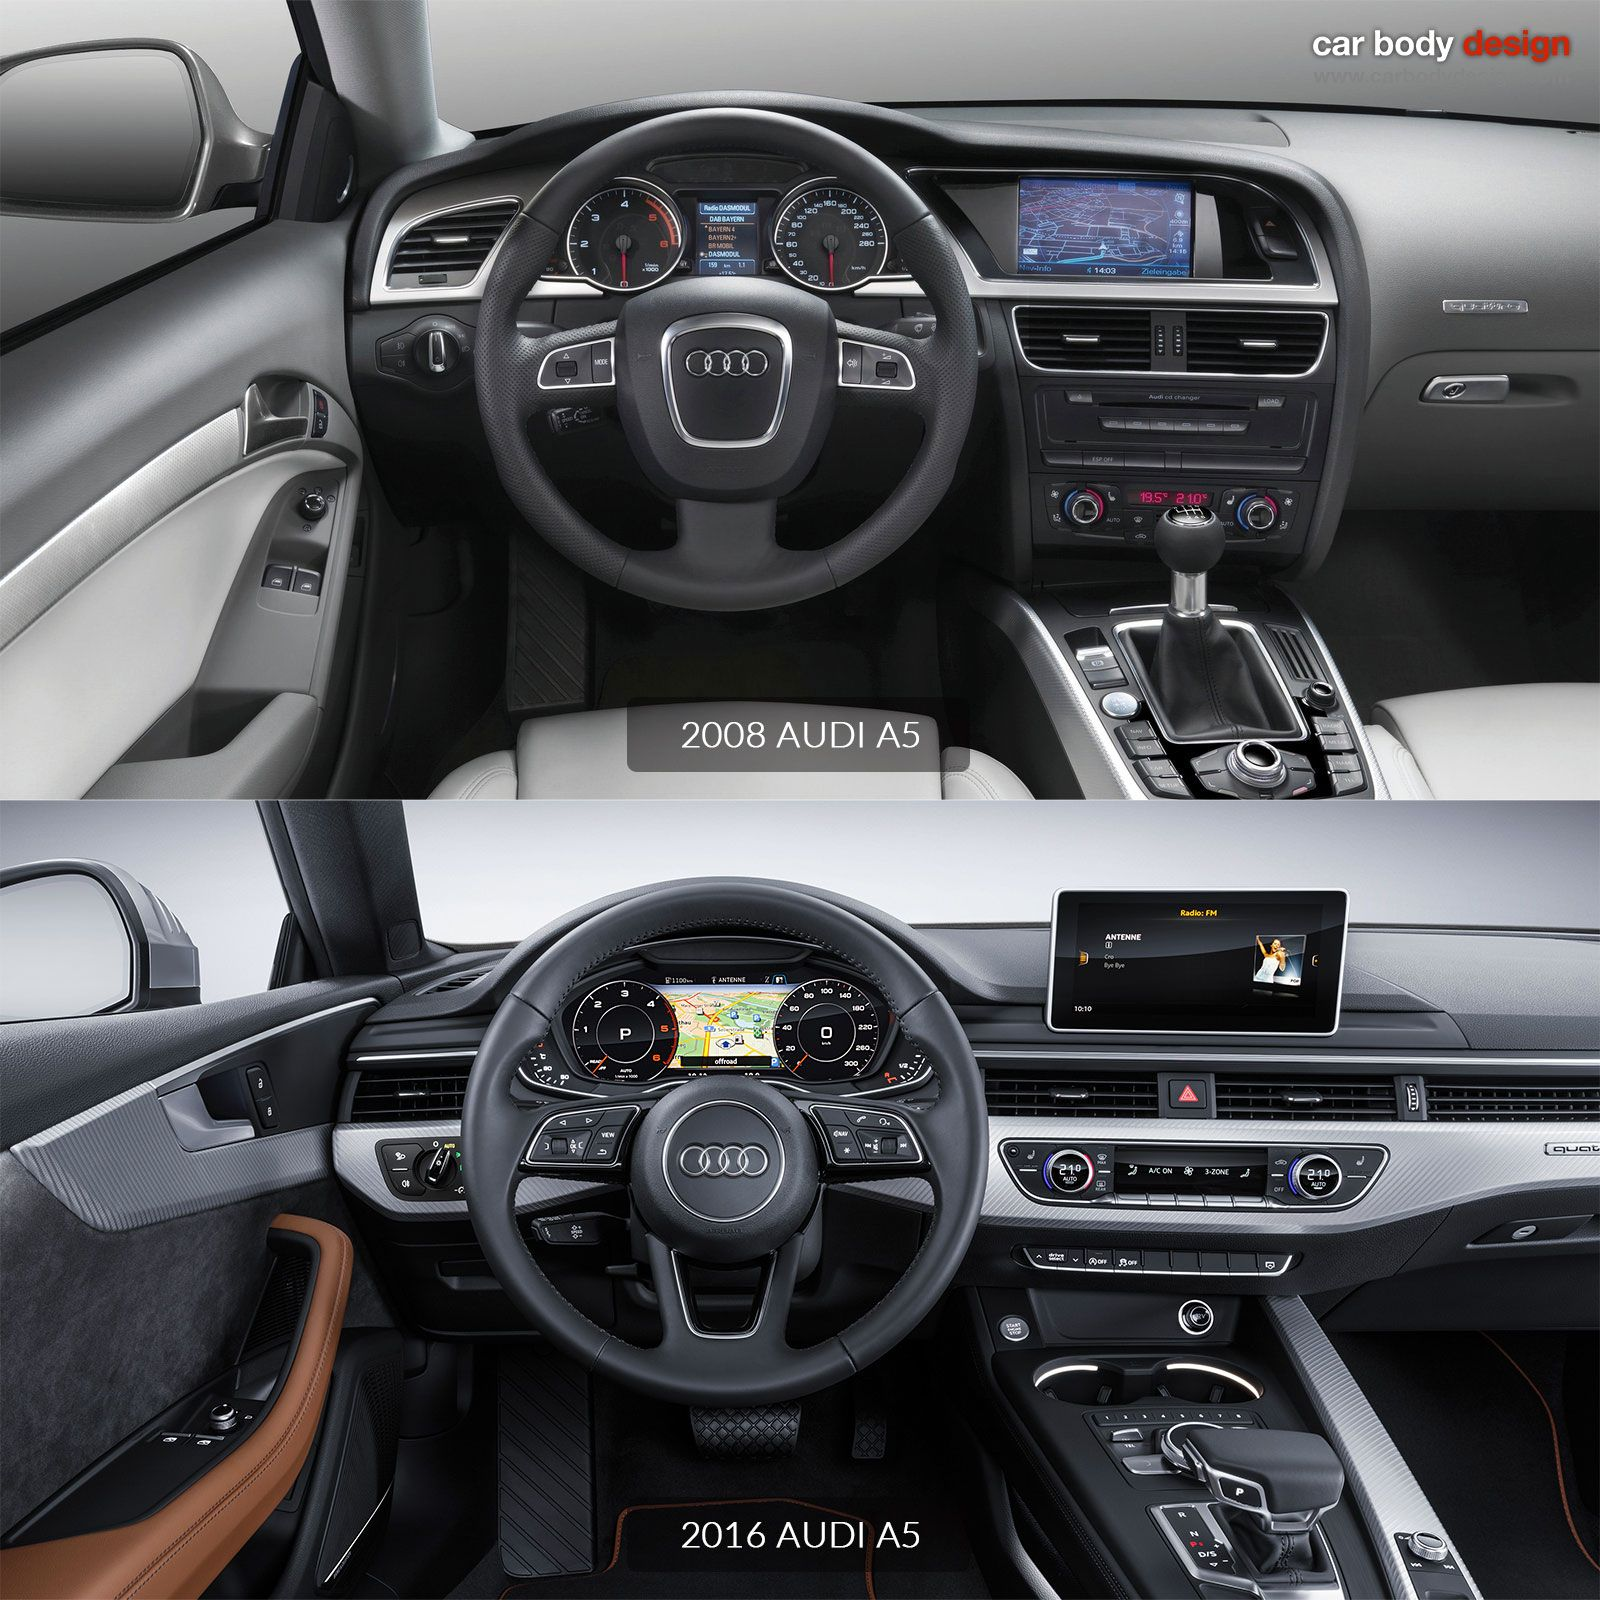 2008 Audi A5 Vs 2016 Audi A5 Interior Design Comparison Audi A5 Audi A5 Interior Audi A5 Coupe